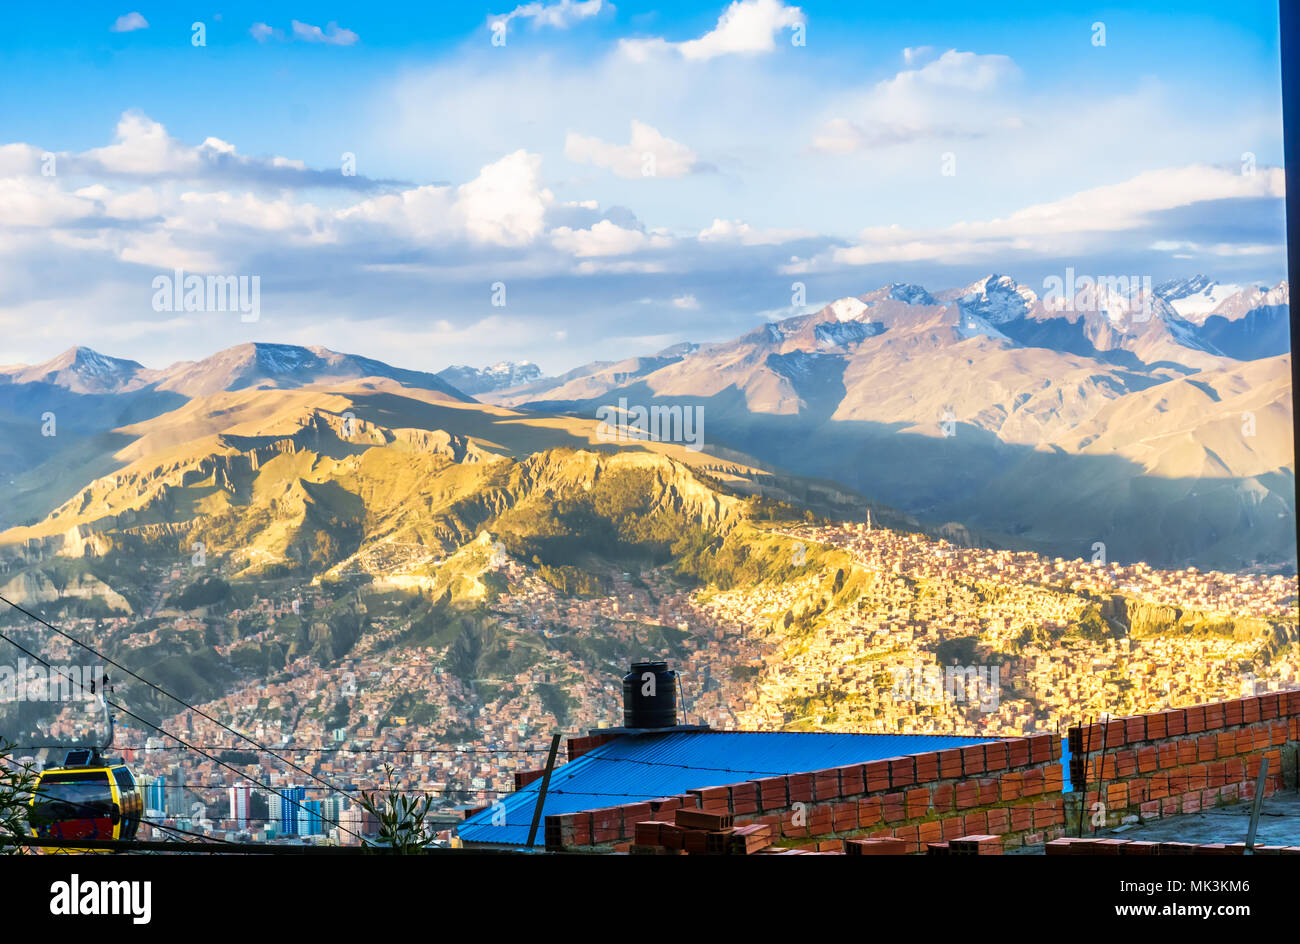 View on cityscape of la Paz and yellow cable car in front of illimani mountain - Bolivia - Stock Image